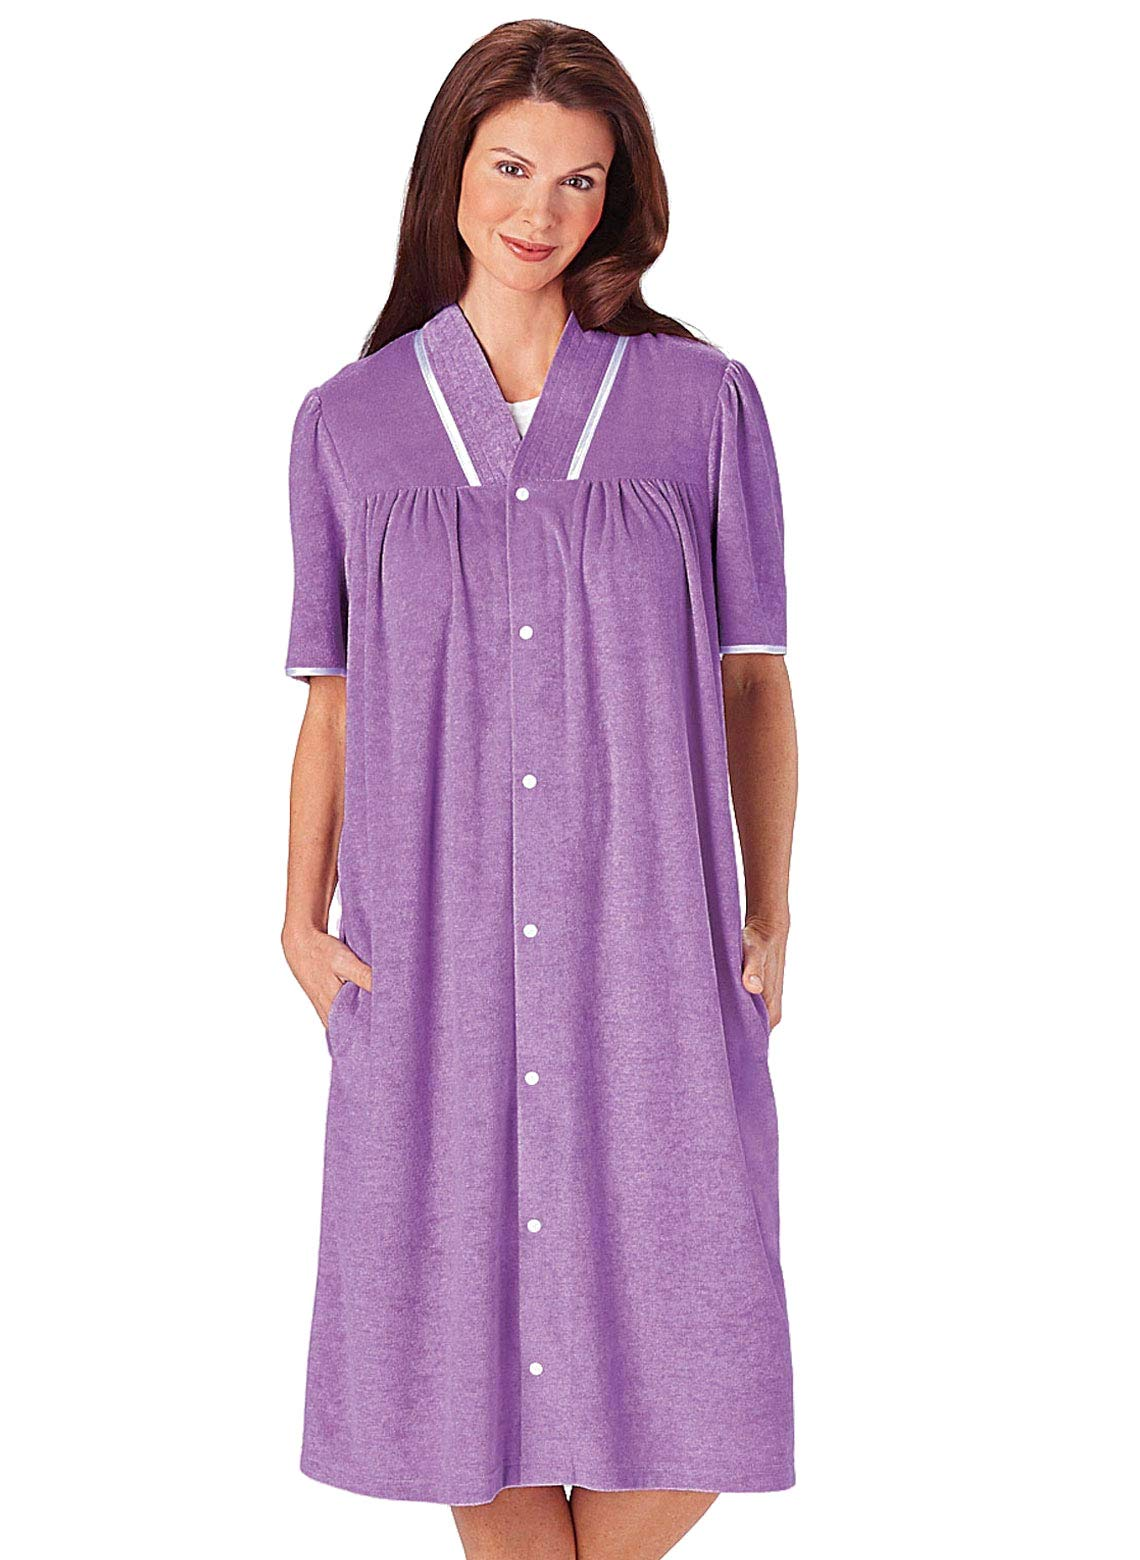 Carol Wright Gifts Terry Snap Robe, Color Purple, Size Extra Large (3X), Purple, Size Extra Large (3X)